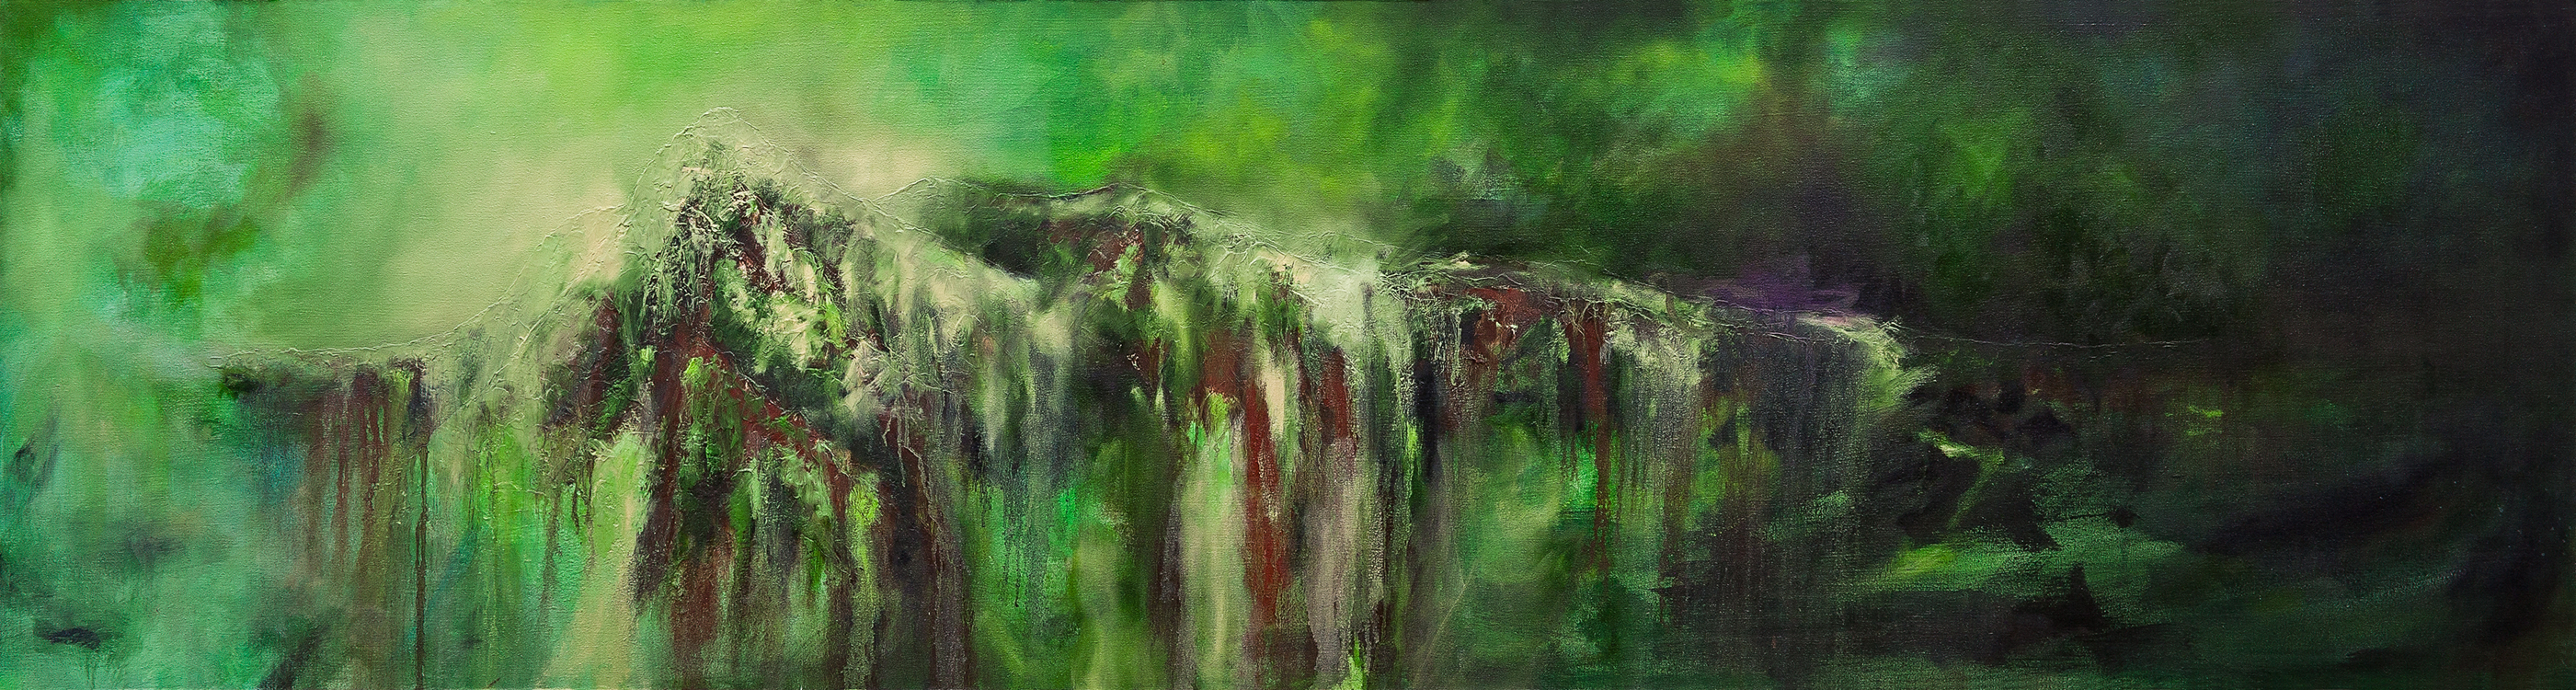 "Awakened Chelonioidea (2017), Oil, Acrylic and Mixed Media on Canvas, 24"" x 90"""